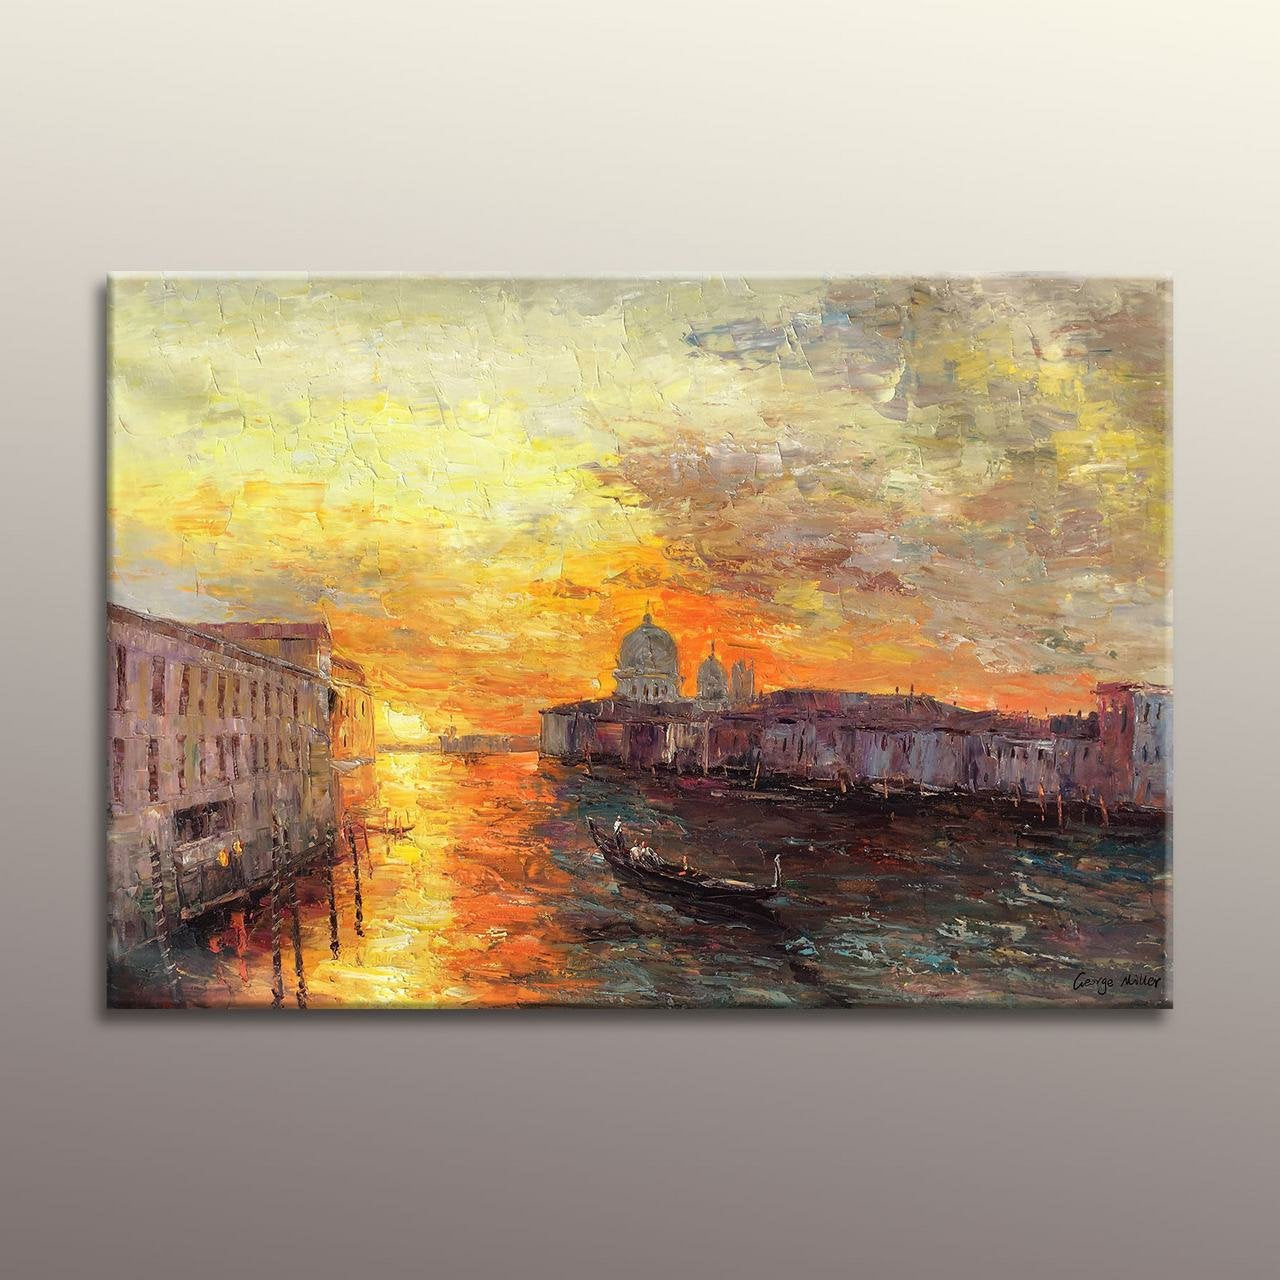 Oil Painting Venice Grand Canal Gondola Sunset, Original Painting, Kitchen Wall Decor, Family Wall Decor, Abstract Canvas Painting Large Art